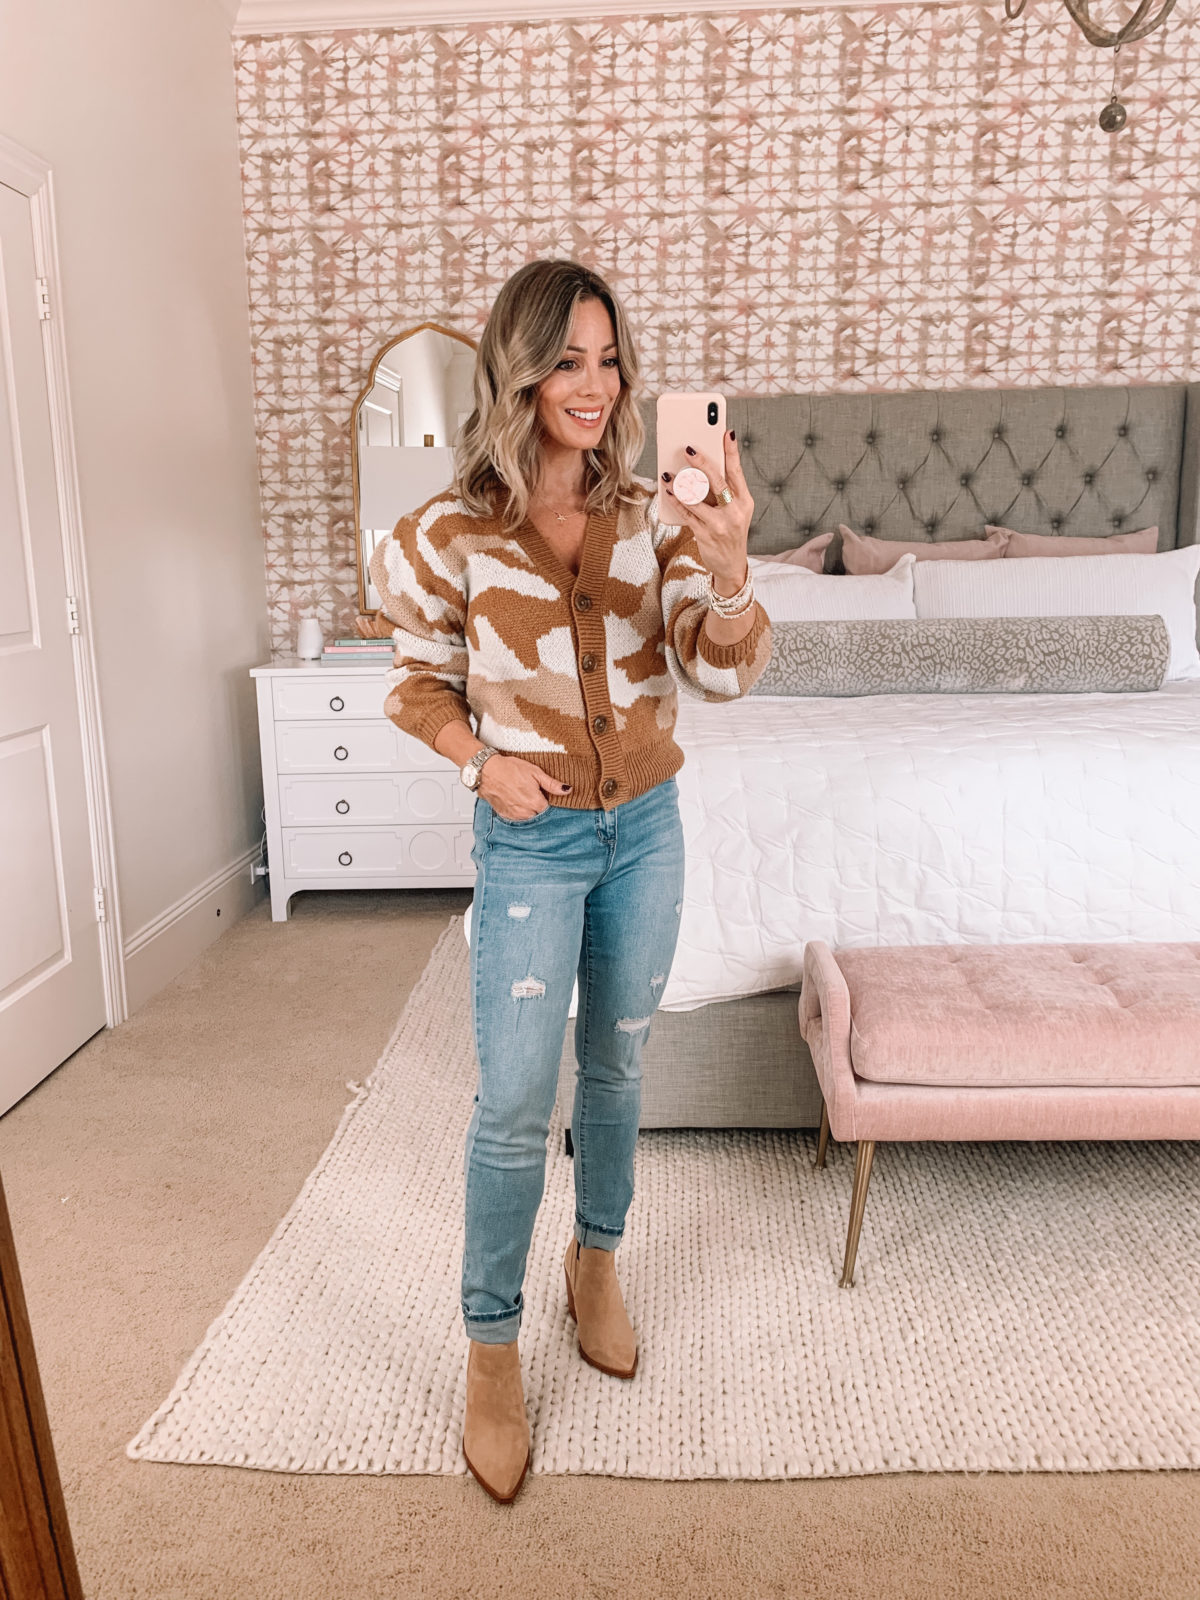 Walmart Fashion, Brown Camo Sweater, Distressed Jeans, Booties